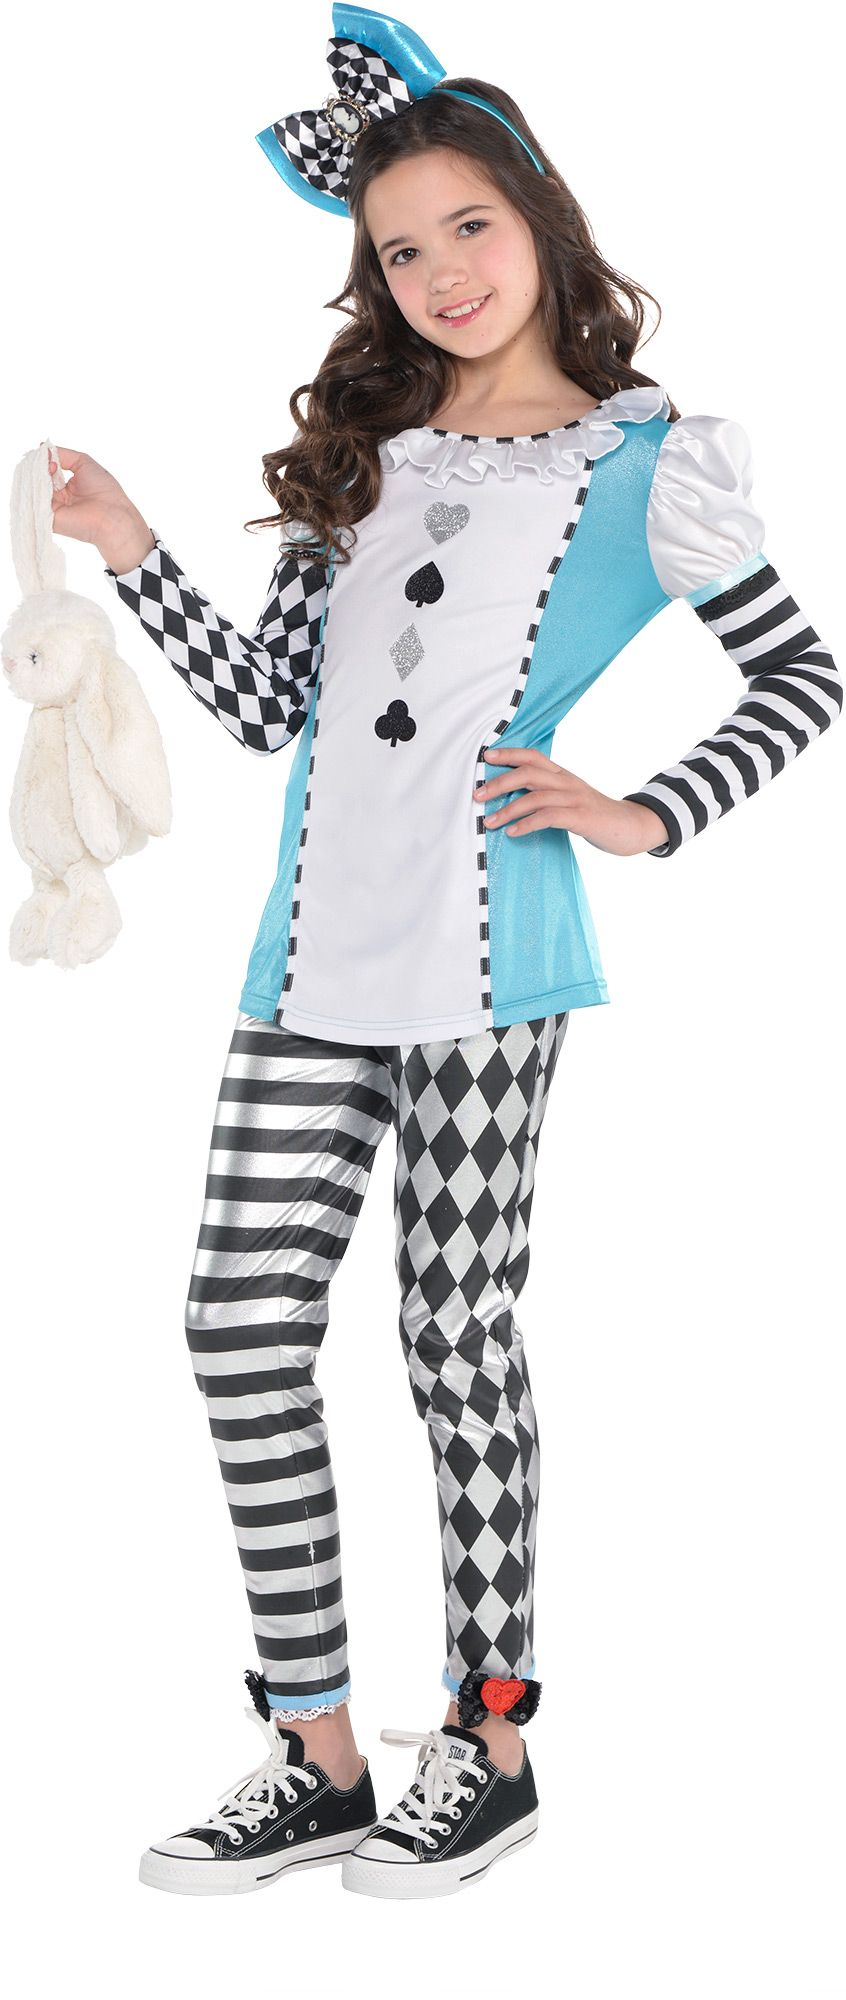 Create Your Own Look - Tween Dark Alice